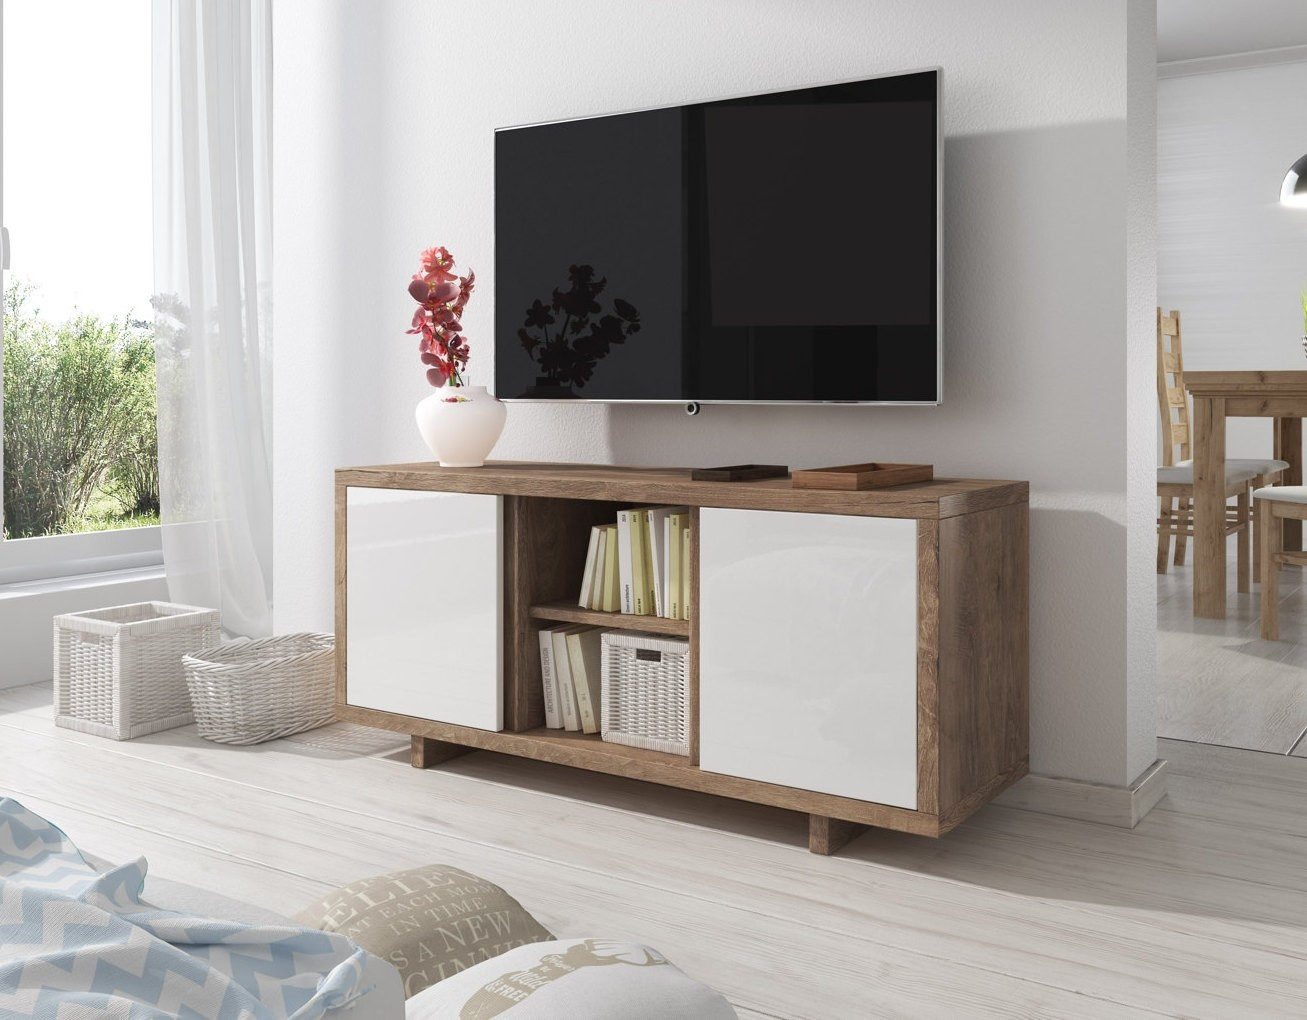 Tv meubel alpha wit eiken 134 cm meubella for Tv meubel design